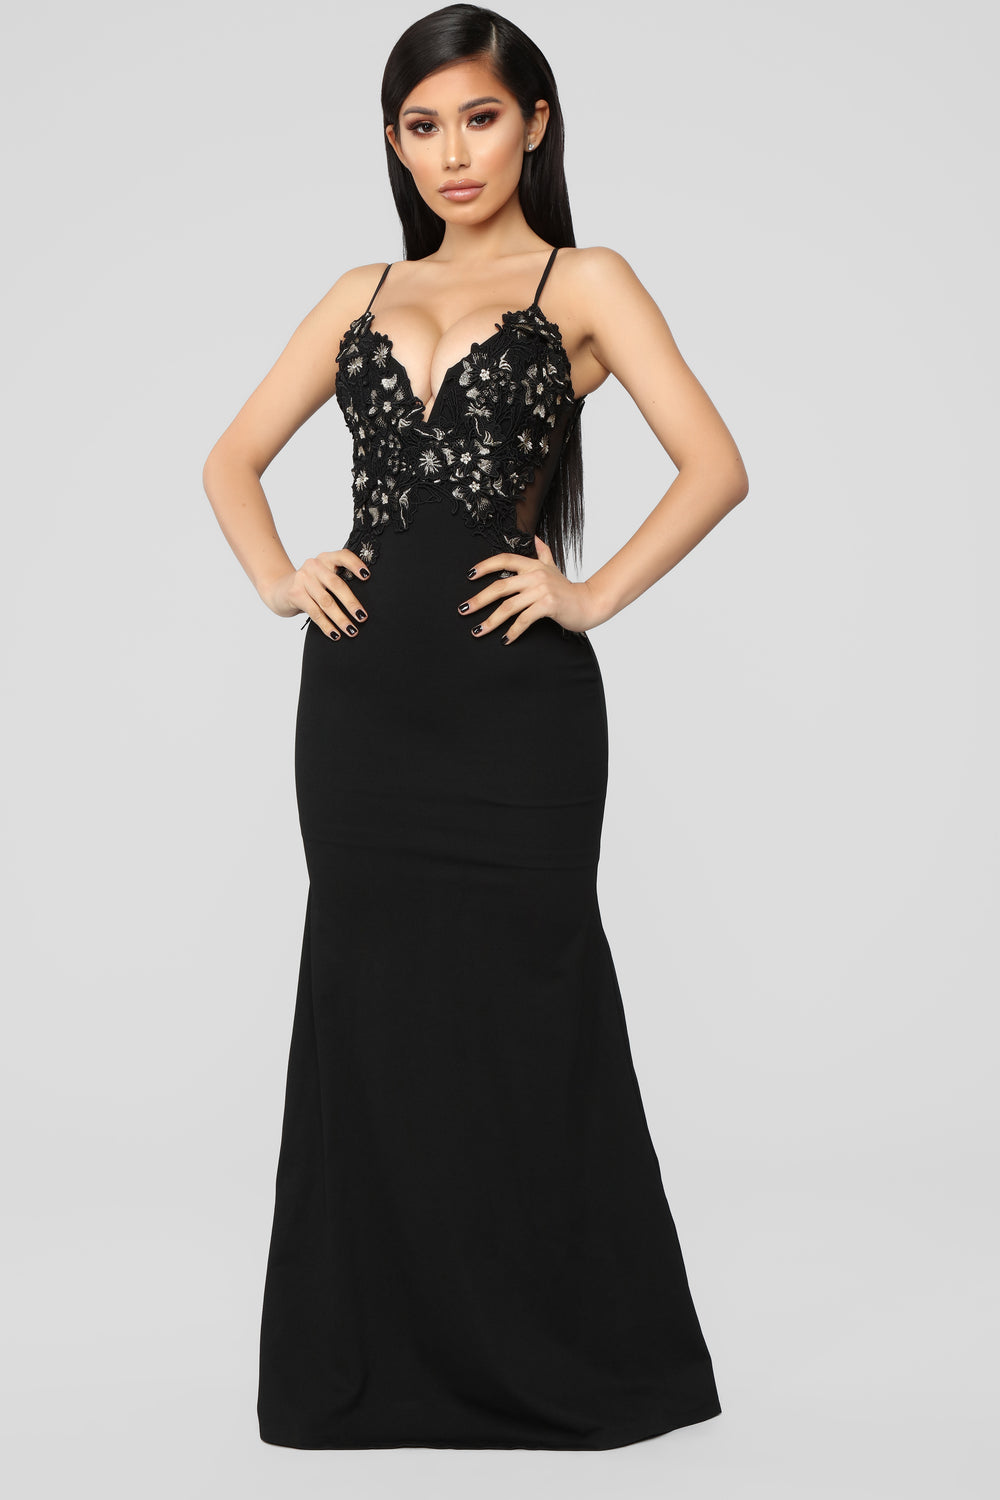 It's A Date Embroidered Gown - Black